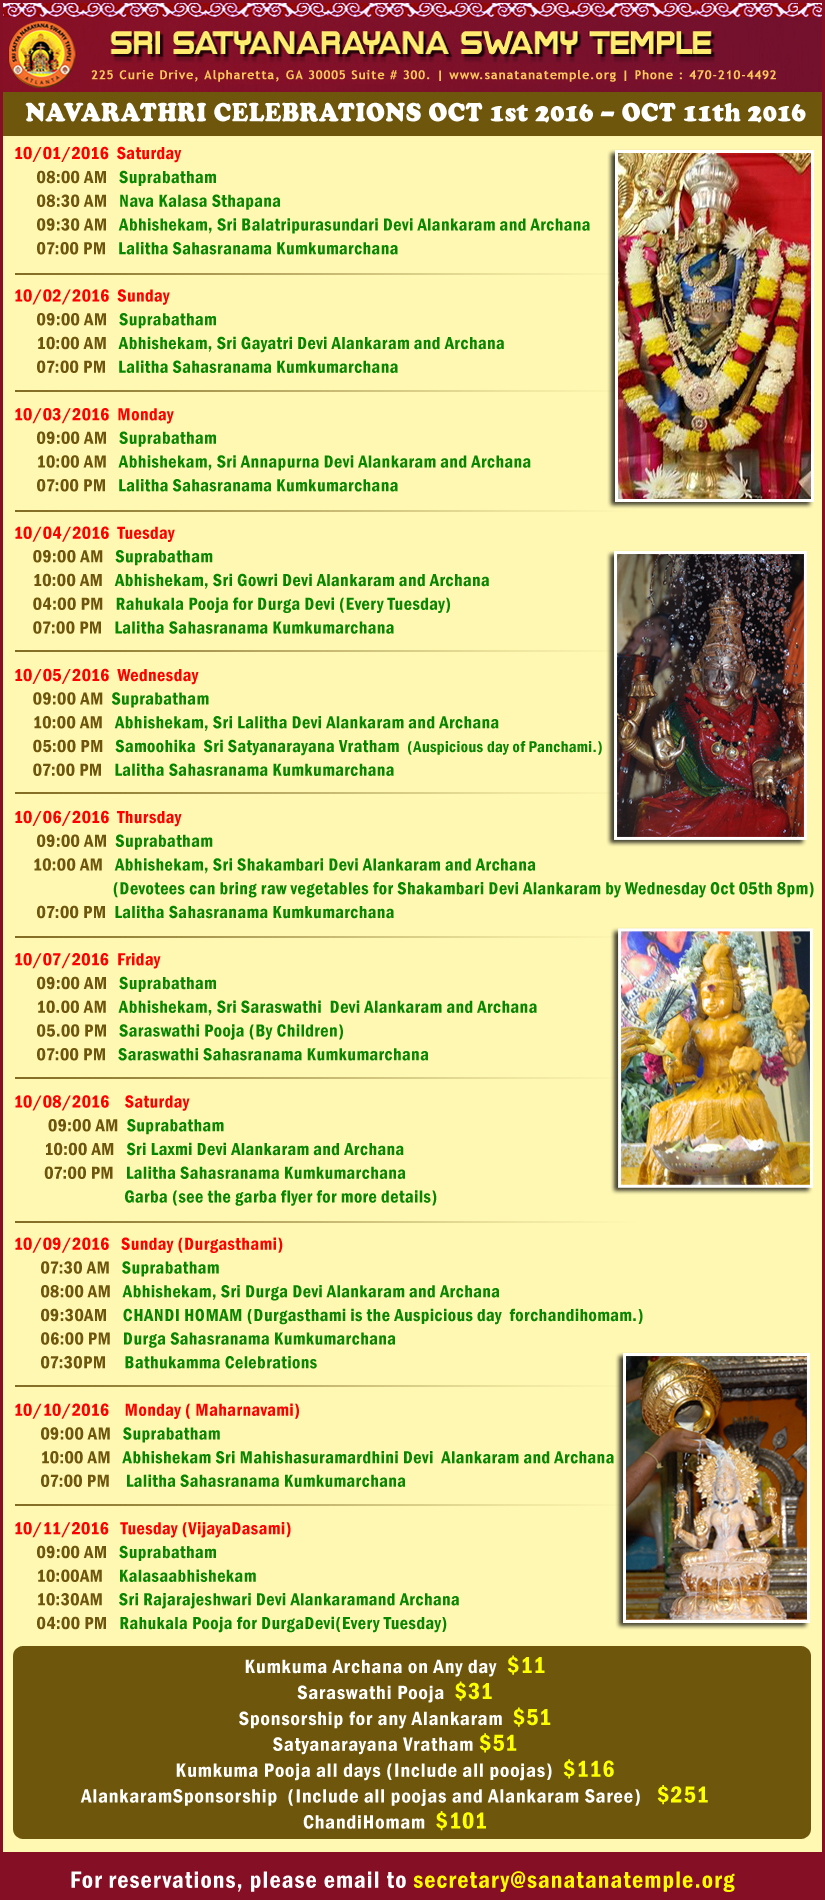 Navarathri-Events-2016.jpg